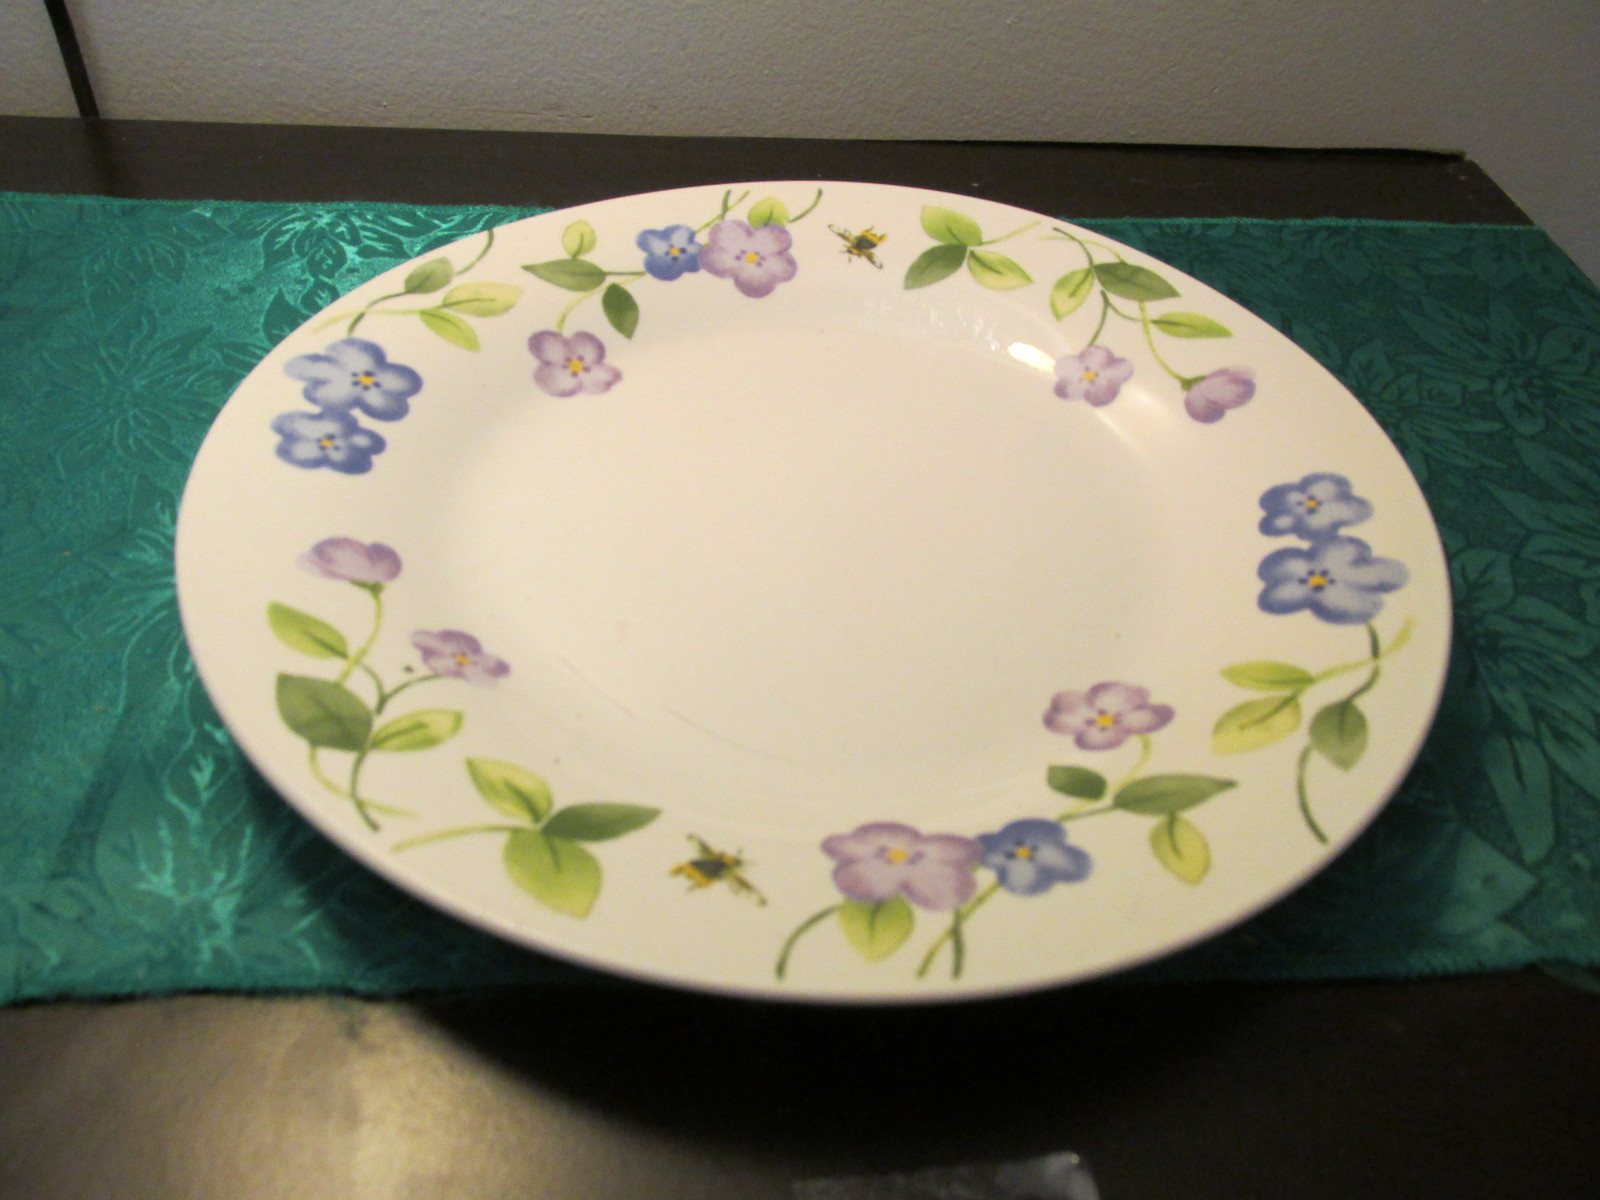 Perennials By Pfaltzgraff Violets and Bees Dinner Plate